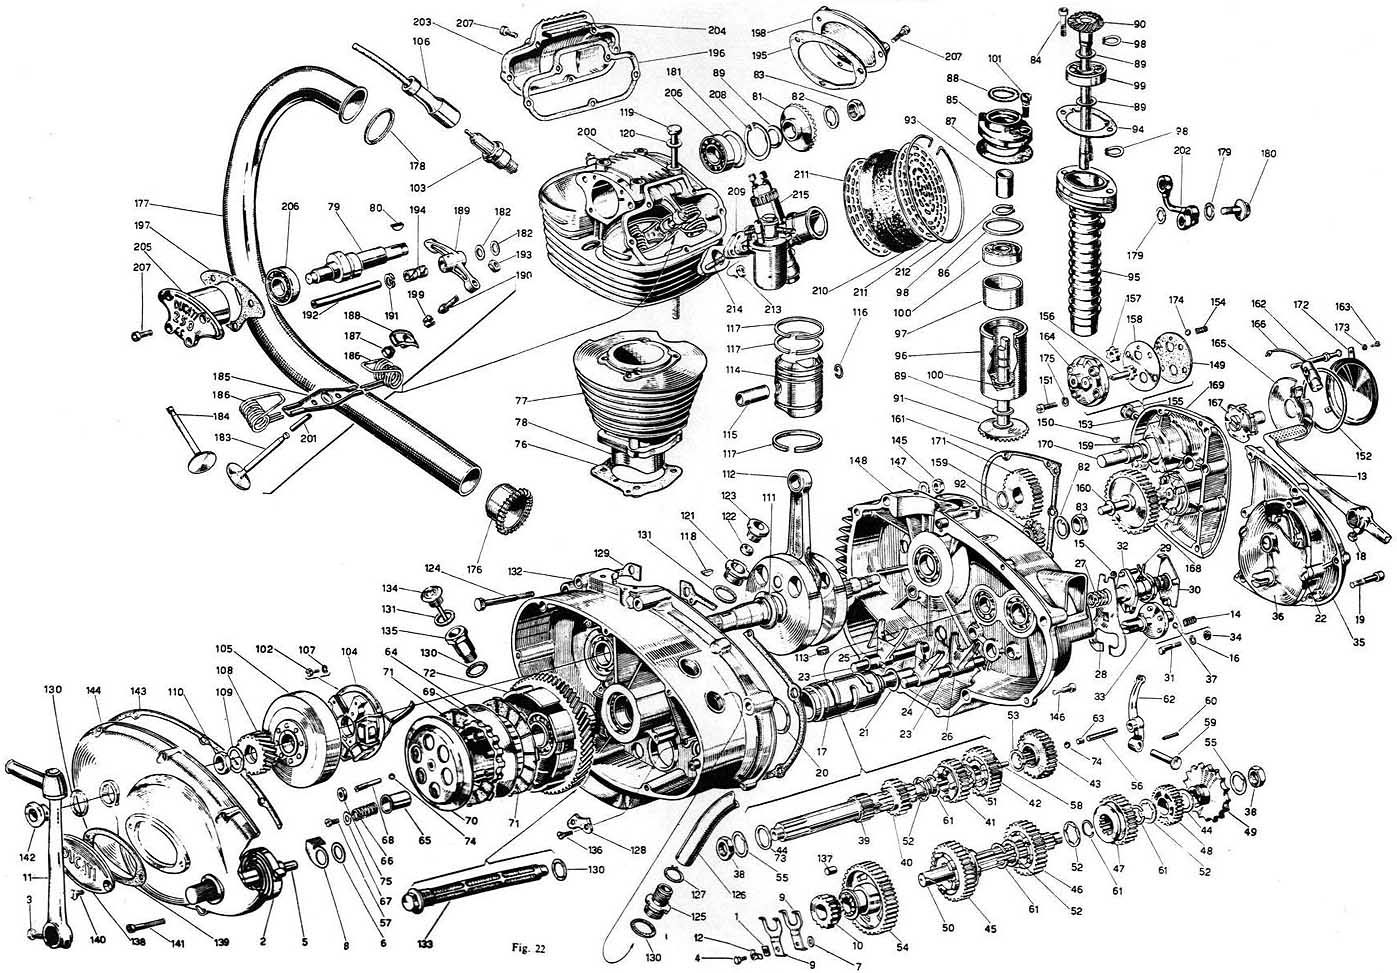 small resolution of ducati engine schematic cutaway diagrams motorcycle engine ducati engine diagrams